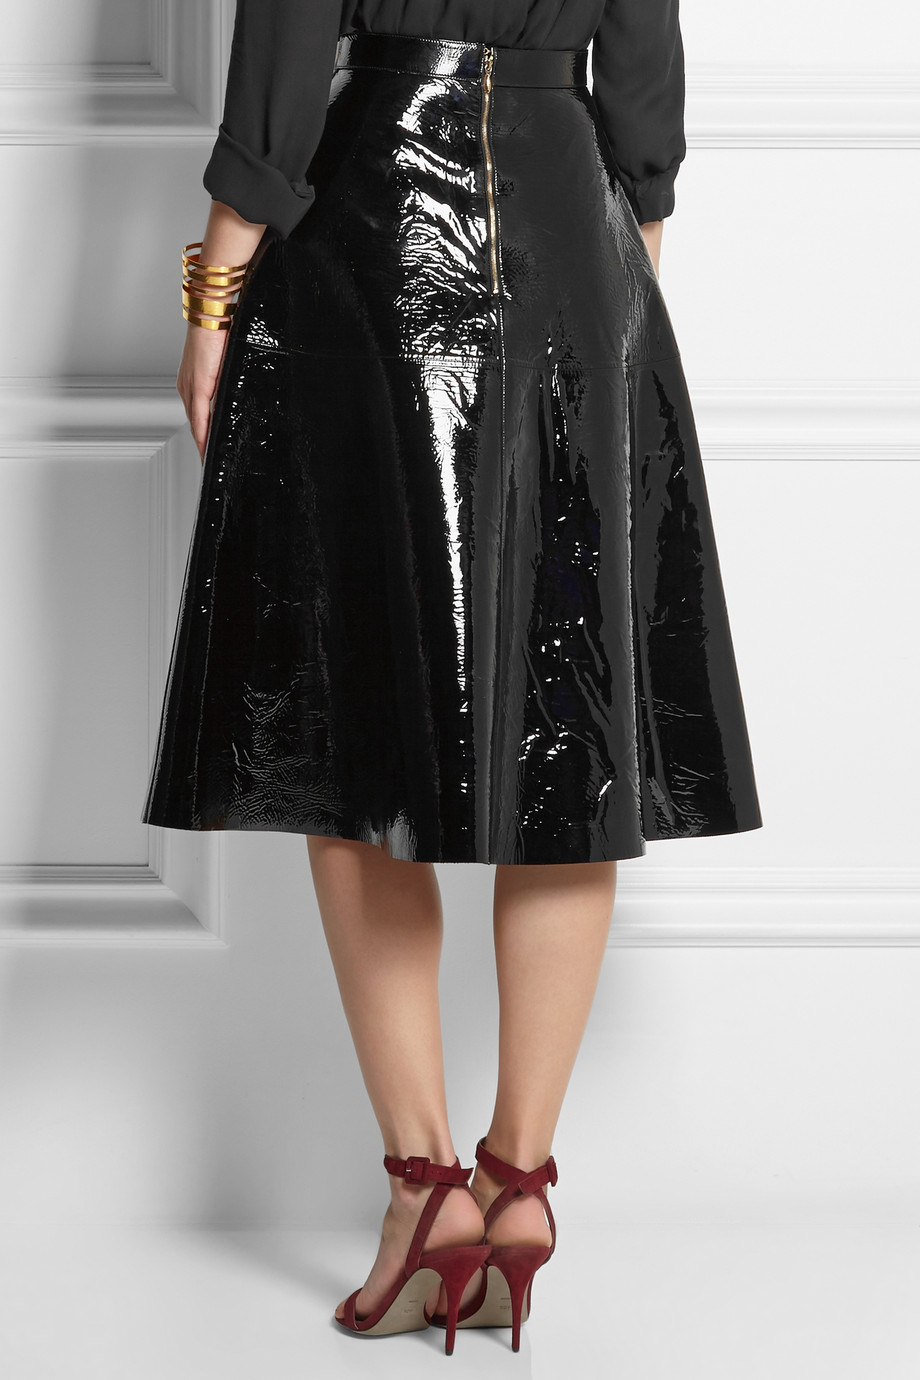 Rochas Patent-leather Skirt in Black | Lyst